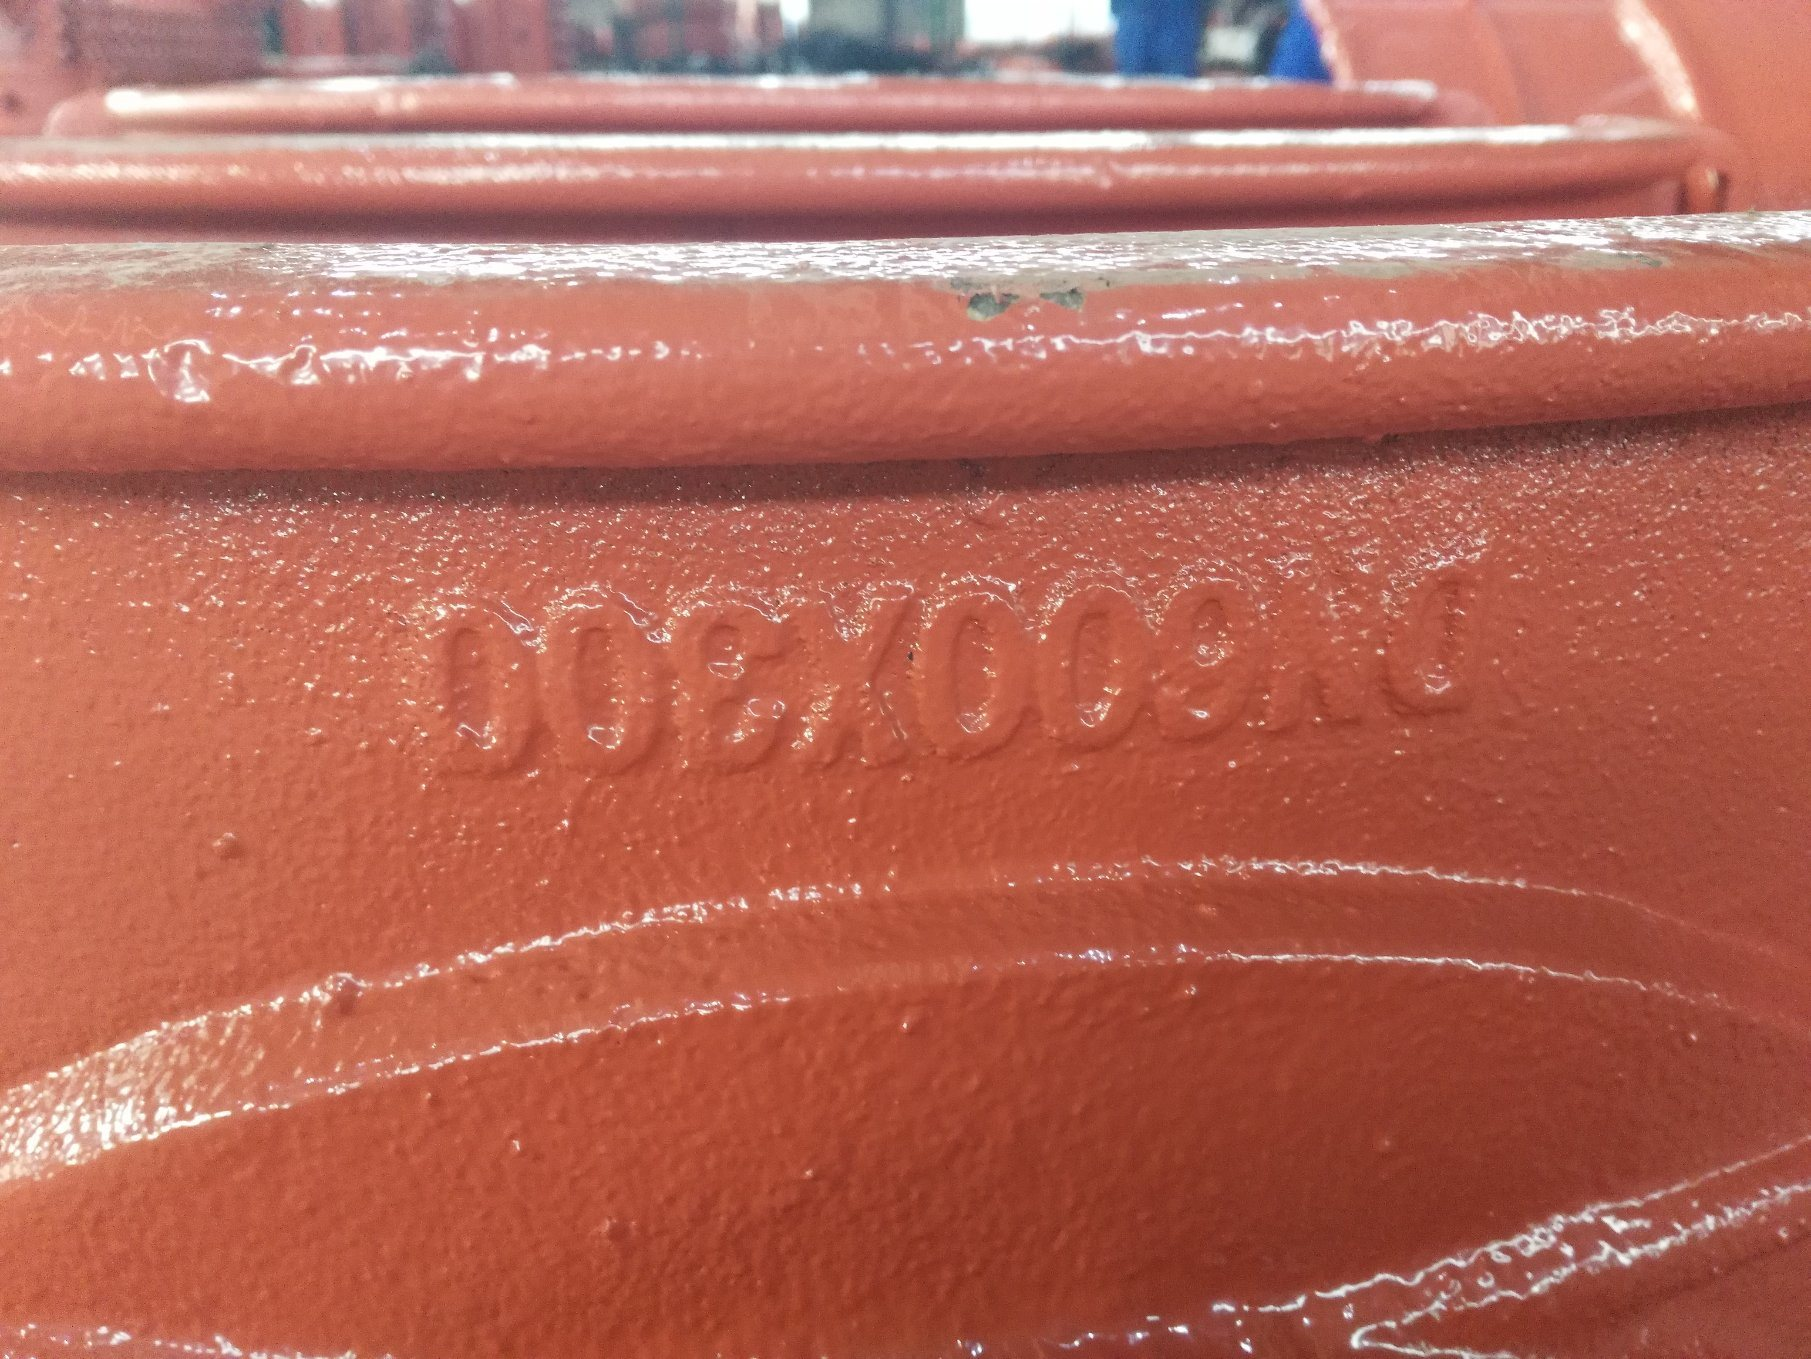 Pipe Hot Tapping Saddle H600X300, Saddle, Tapping Sleeve, Saddle Clamp, Tapping Tee, Branch Saddle, Tapping Saddle for Cast Iron Pipe, Ductile Iron Pipe